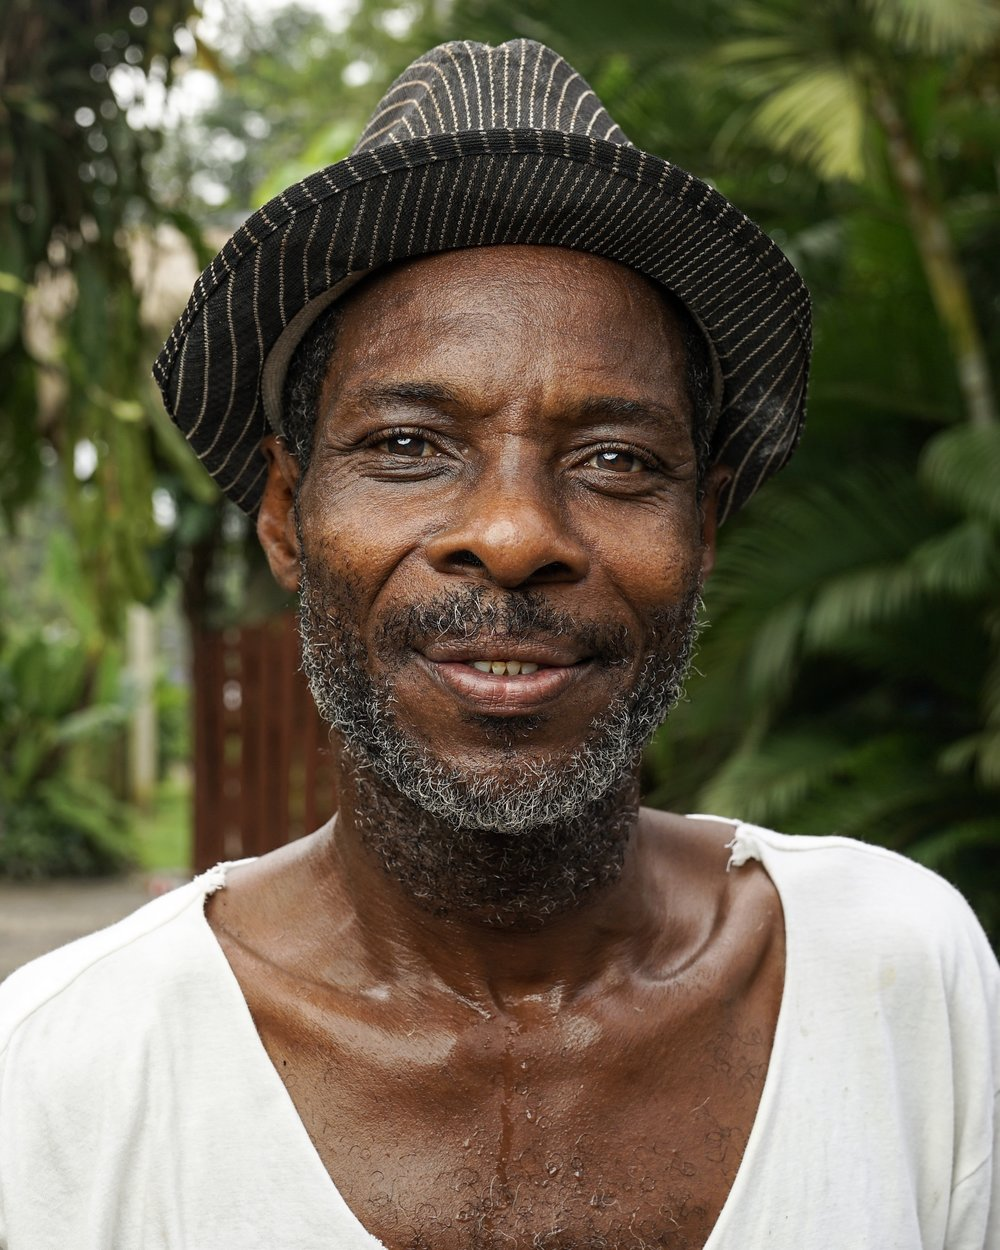 This is Austin, a pipas seller and from one of the original African-Caribbean families that settled in the area. He is much loved by the community